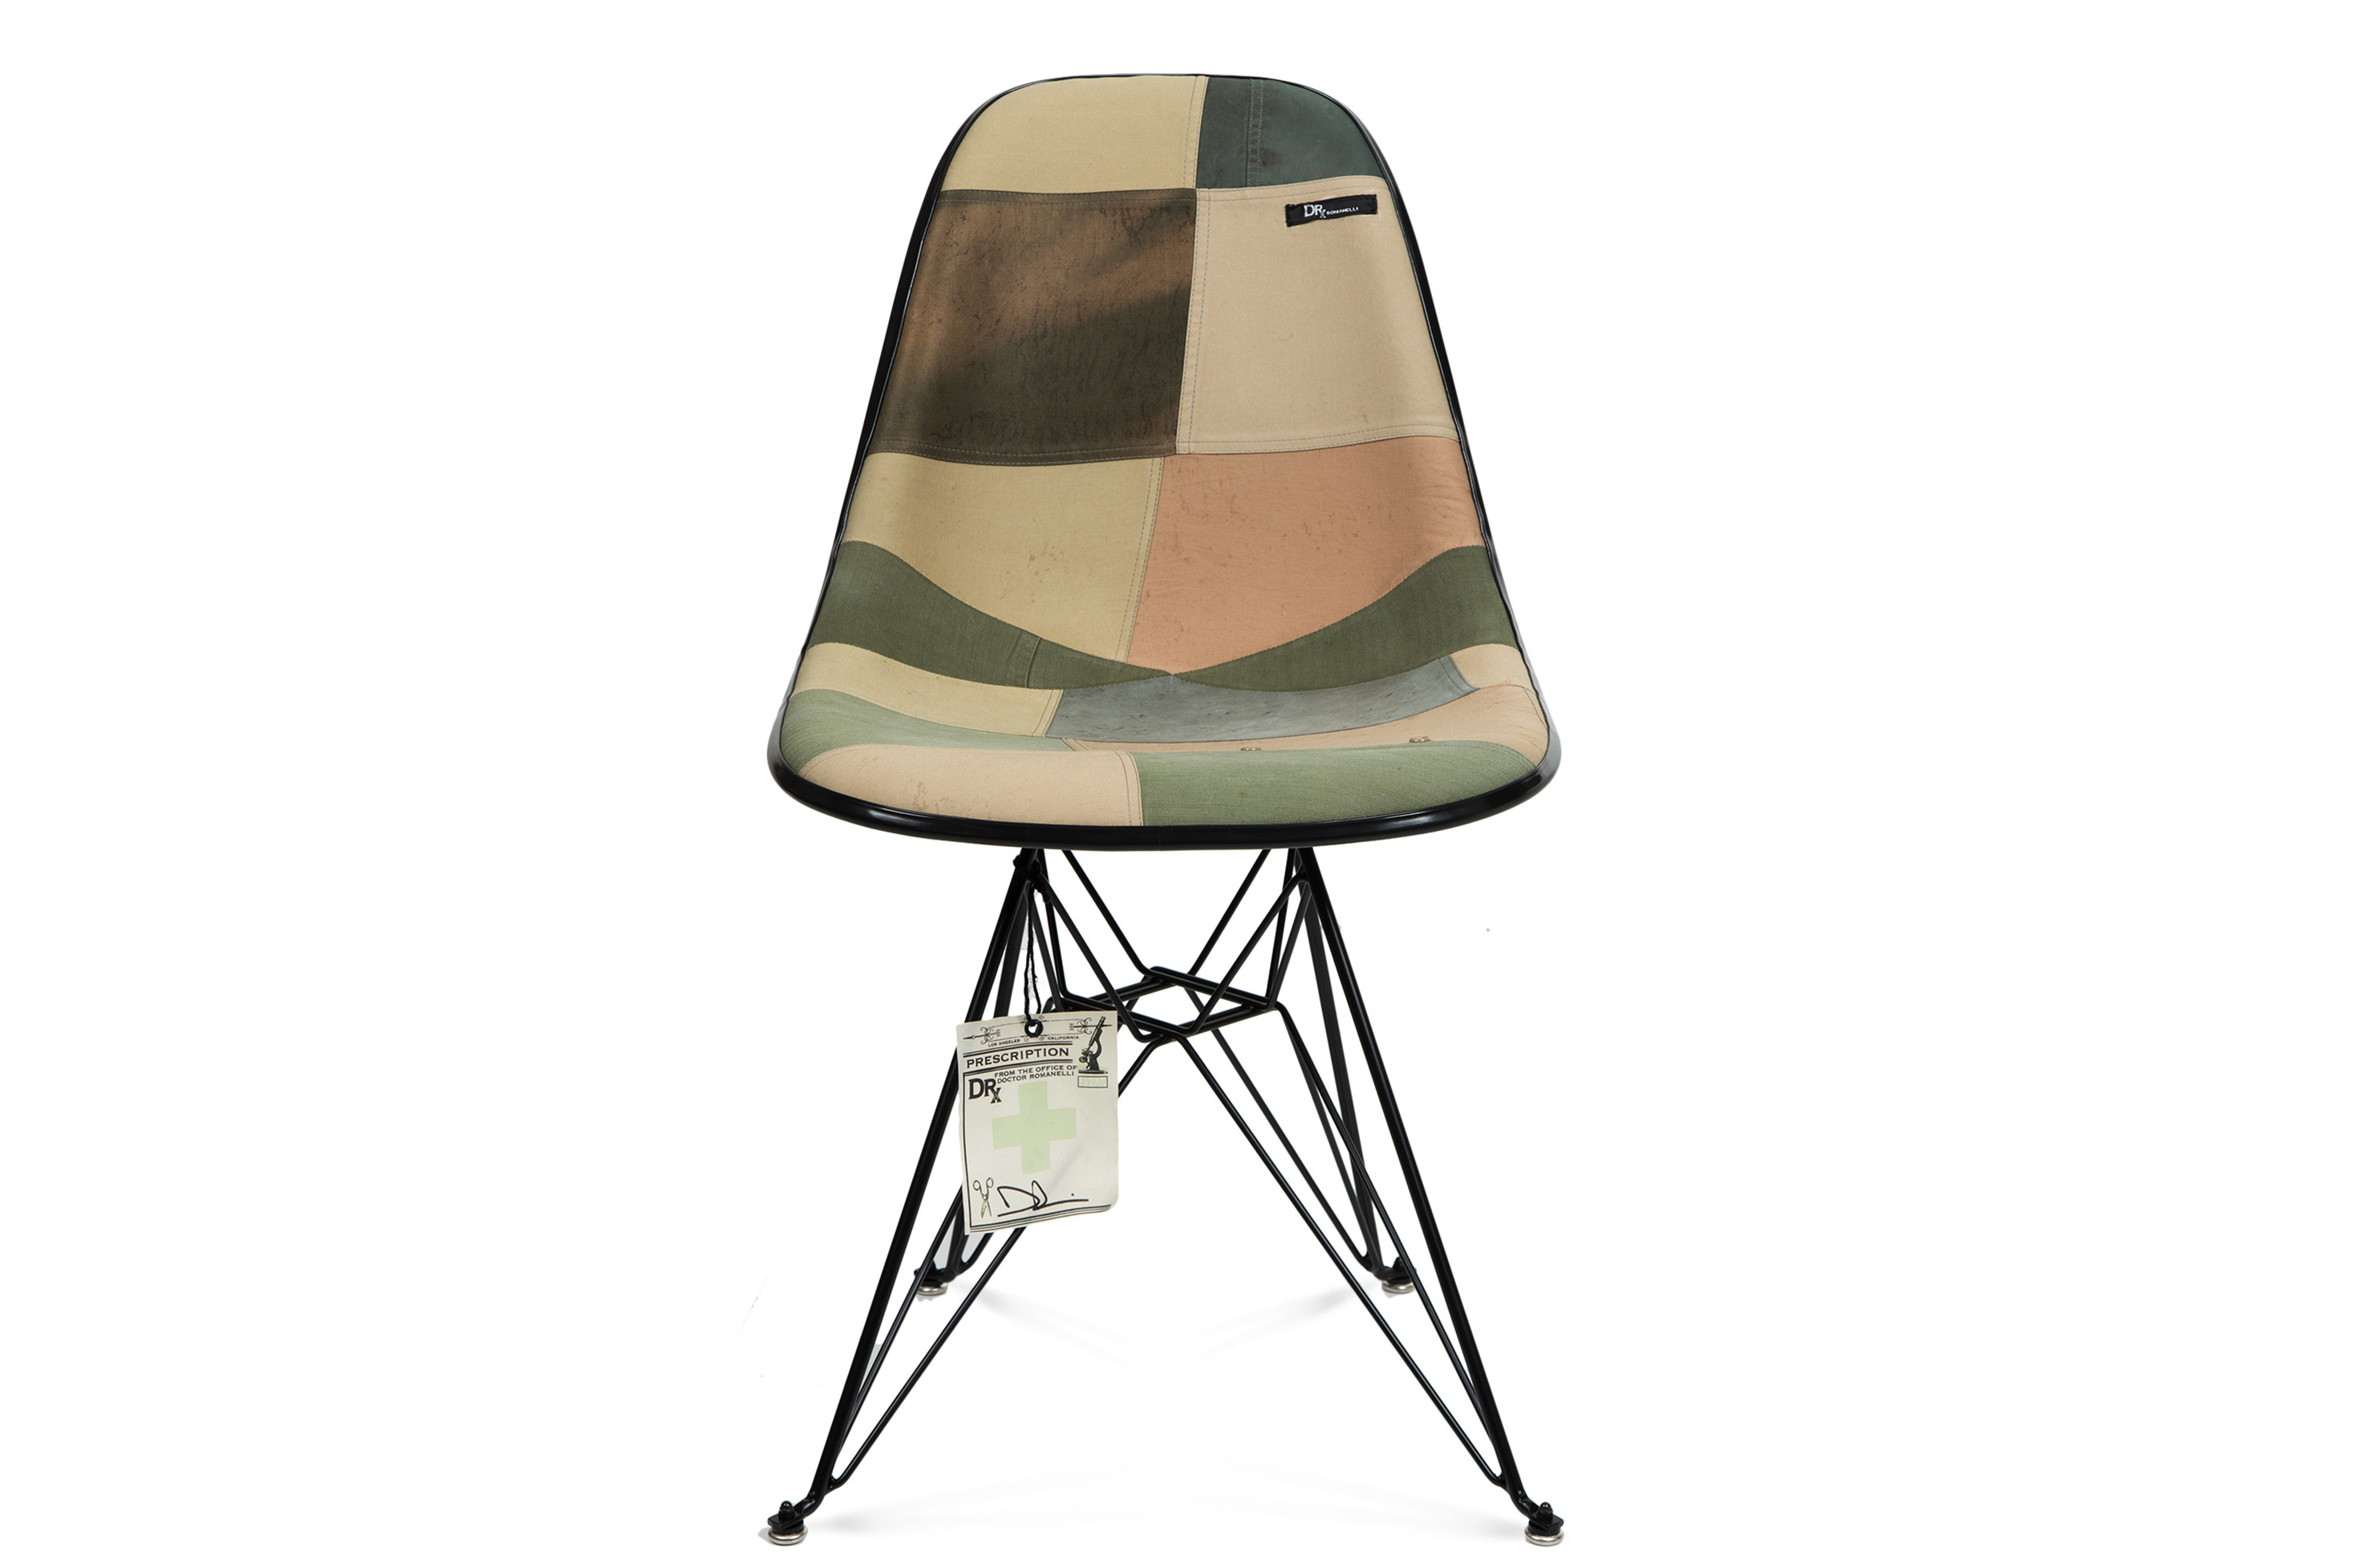 Modernica U0026 DRx Romanelli Release Vintage Military Chair Collection Case  Study Side Shell Eiffel Chair